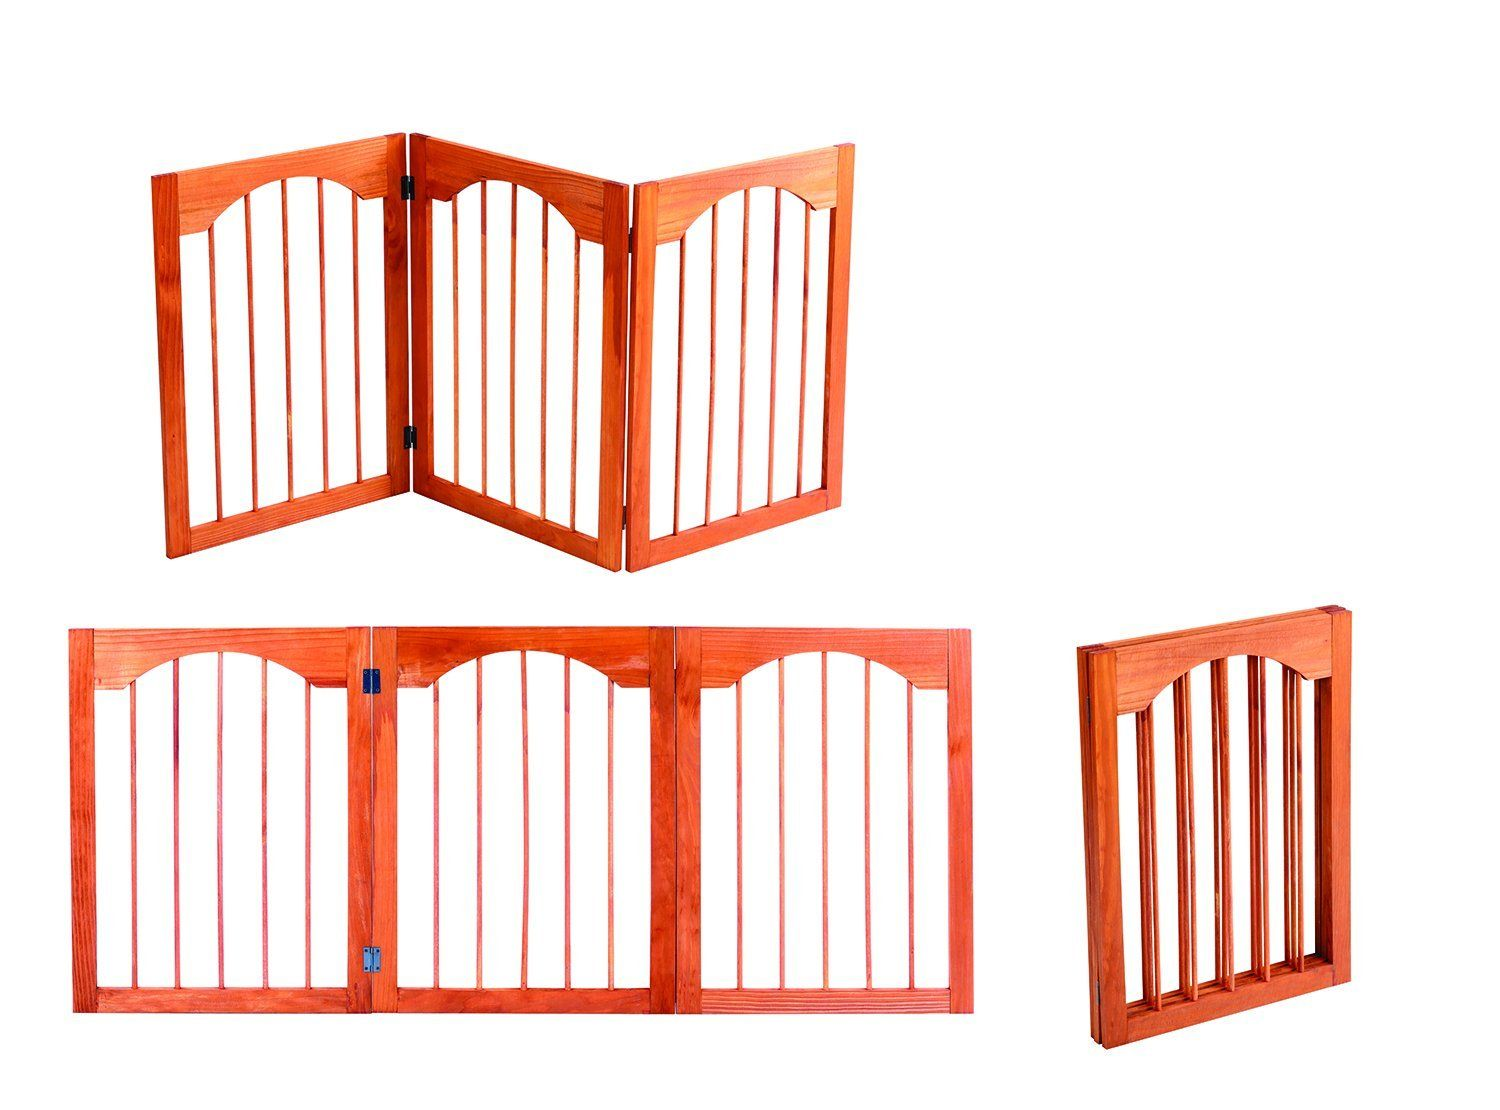 52 5 Indoor Outdoor Arch Design Adjule Free Standing Solid Wood 3 Panel Folding Pet Gate Insider S Special Review You Can T Miss